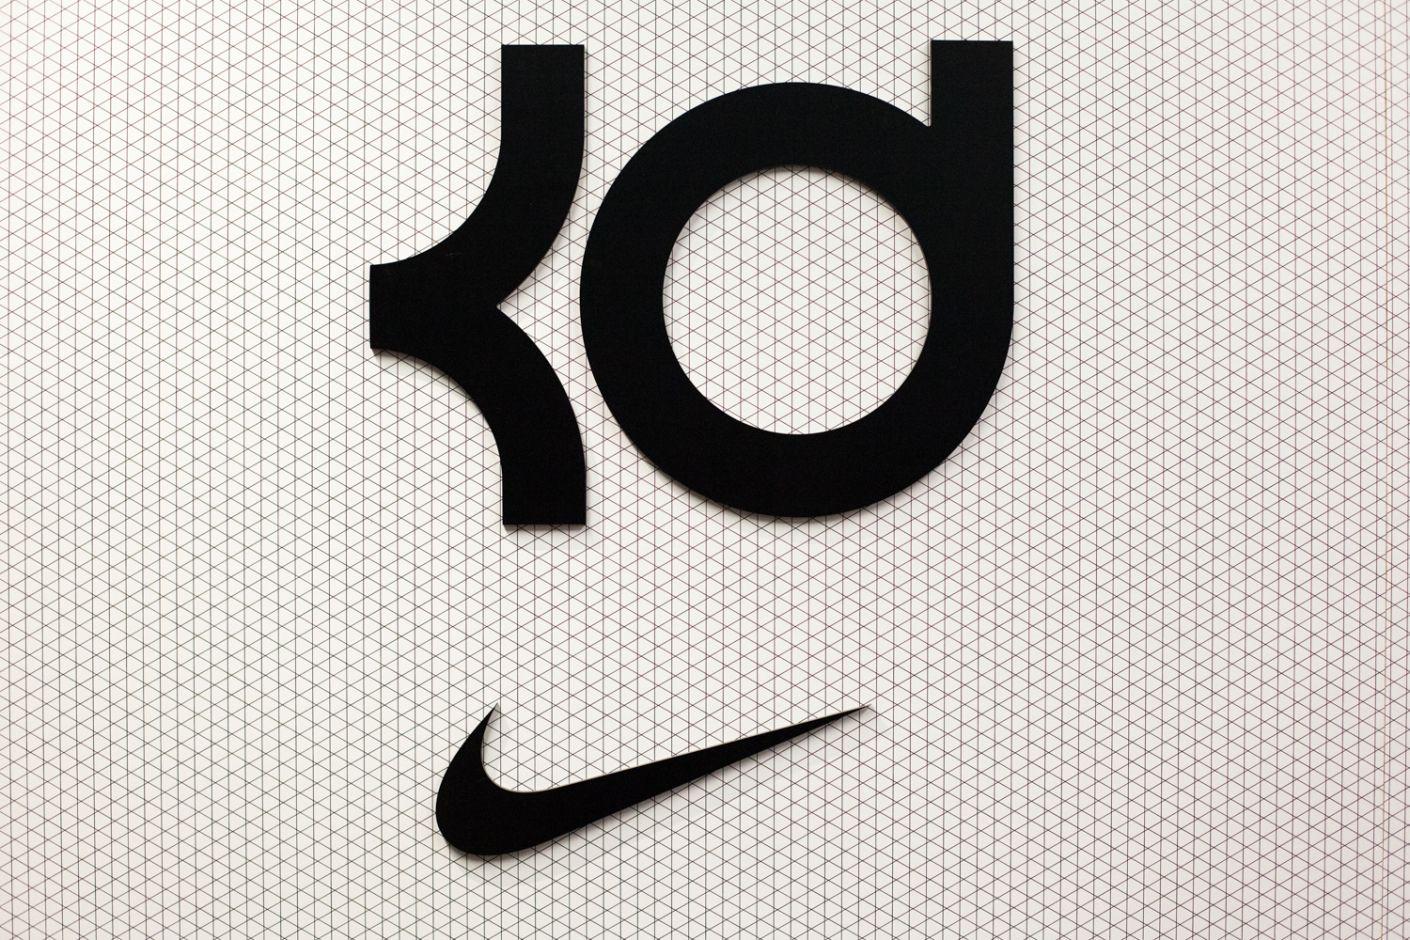 25 Outstanding Logos Of Professional Athletes Inspirationfeed Nike Kd Vi Nike Air Max Classic